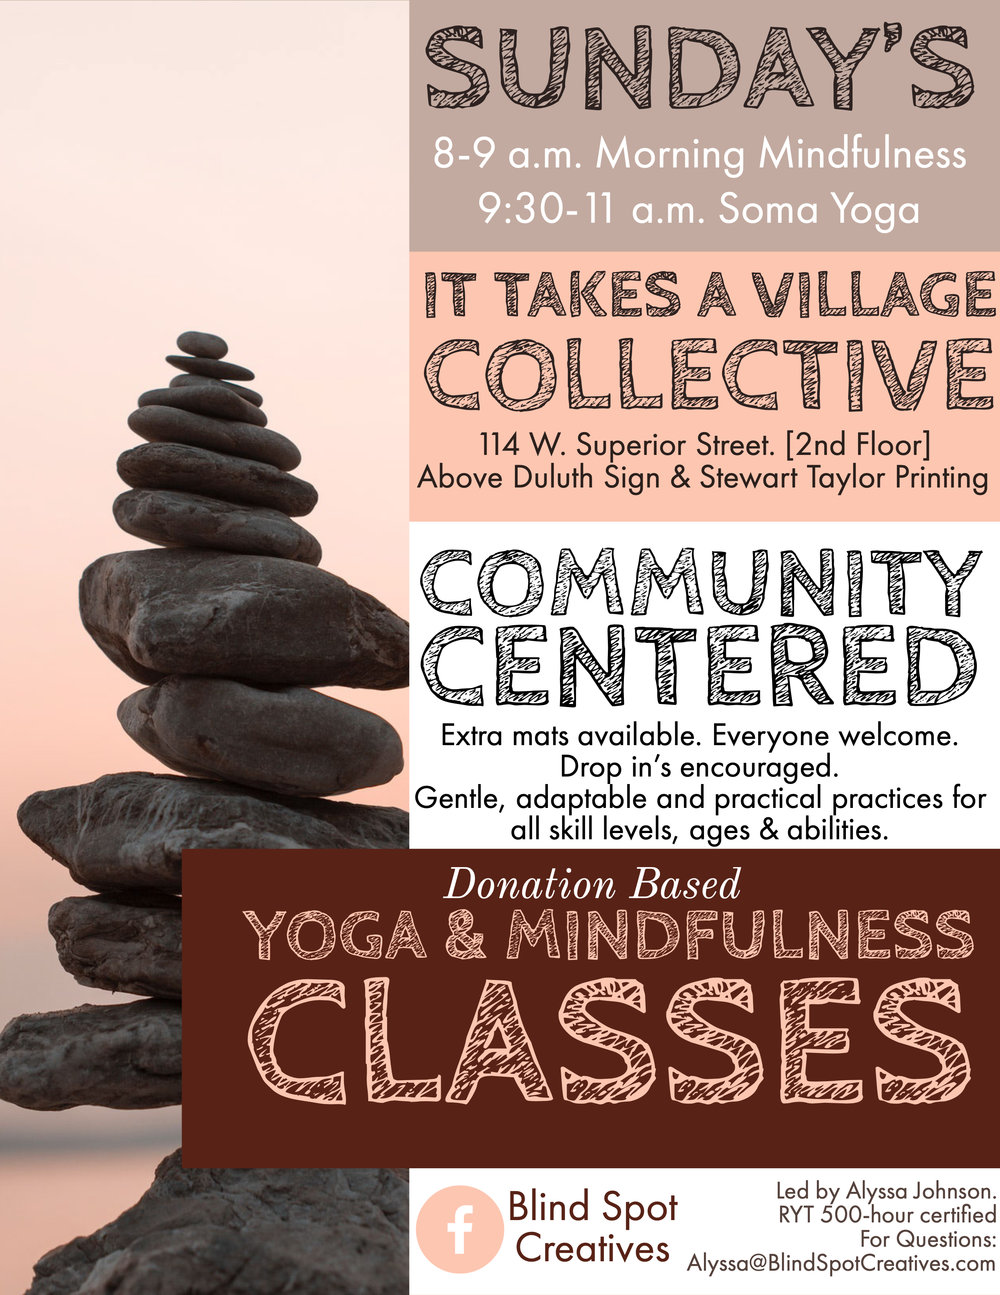 Morning Mindfulness Community Class - It takes a village- alyssa johnson- blind spot wellness - yoga, mindfulness, meditation